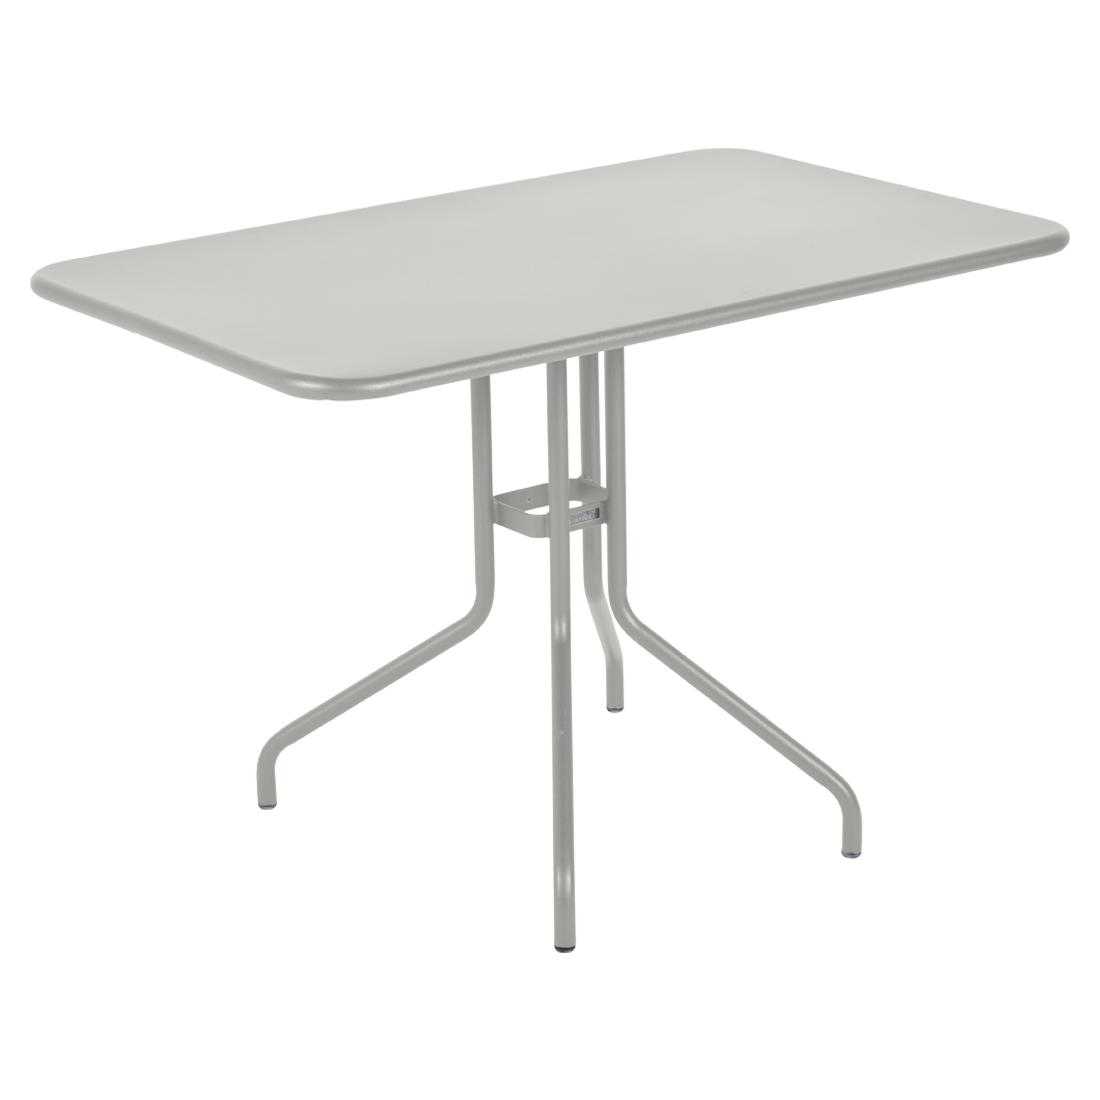 table restaurant, table terrasse, table metal, table pliante metal, mobilier restaurant, table pliante gris